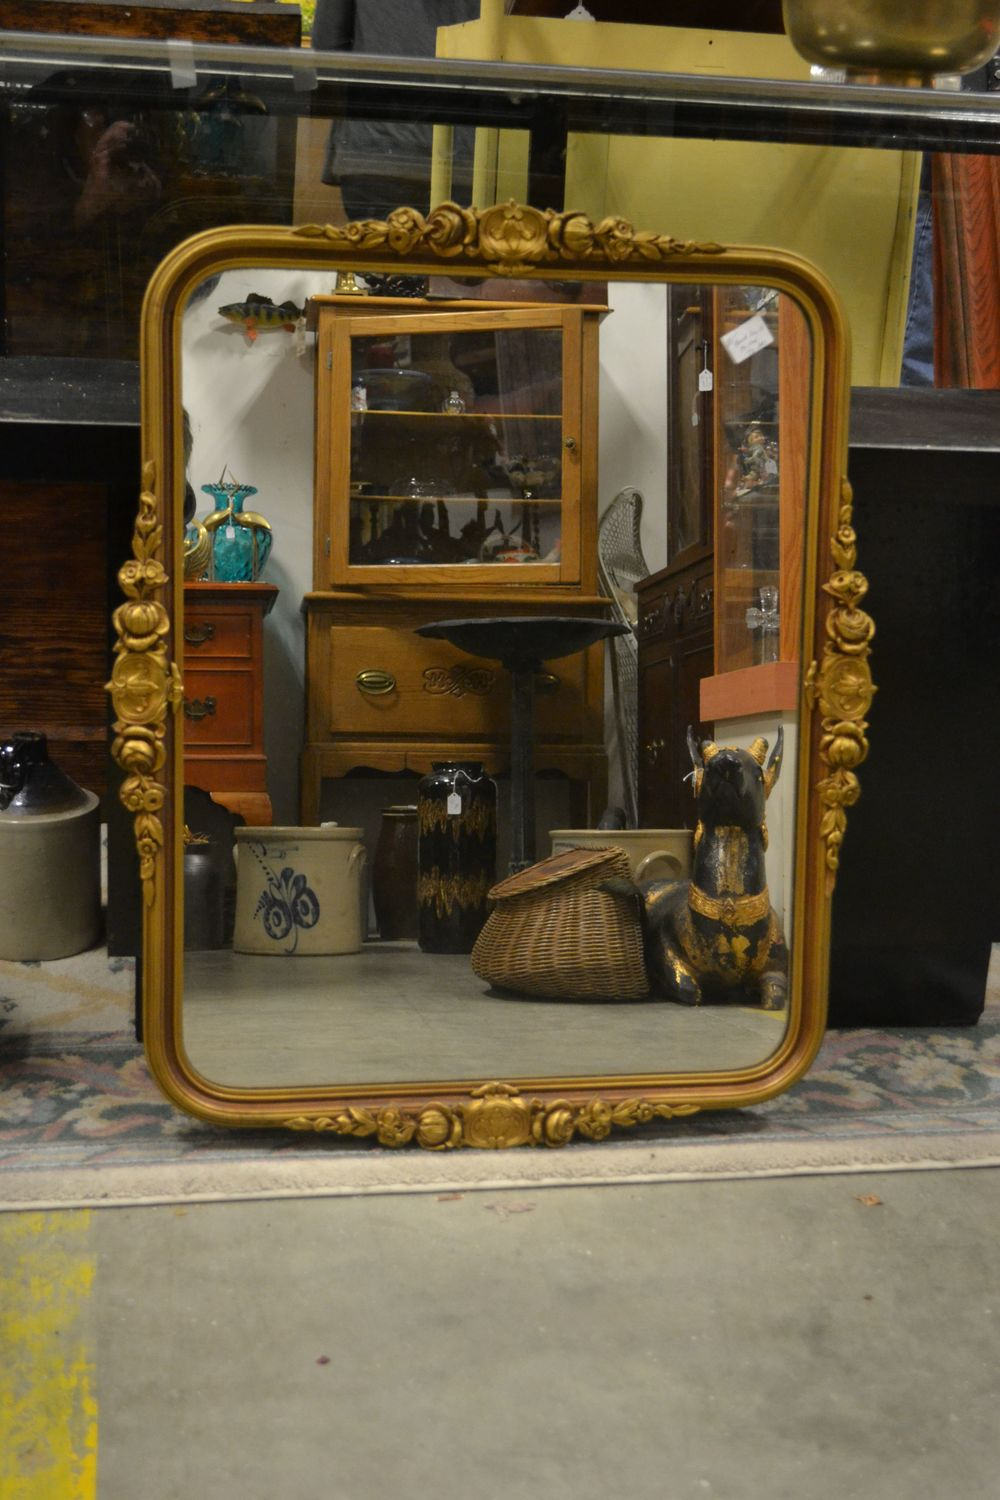 beautifully shaped mirror that would fit anywhere - as long as it reflects something nice!